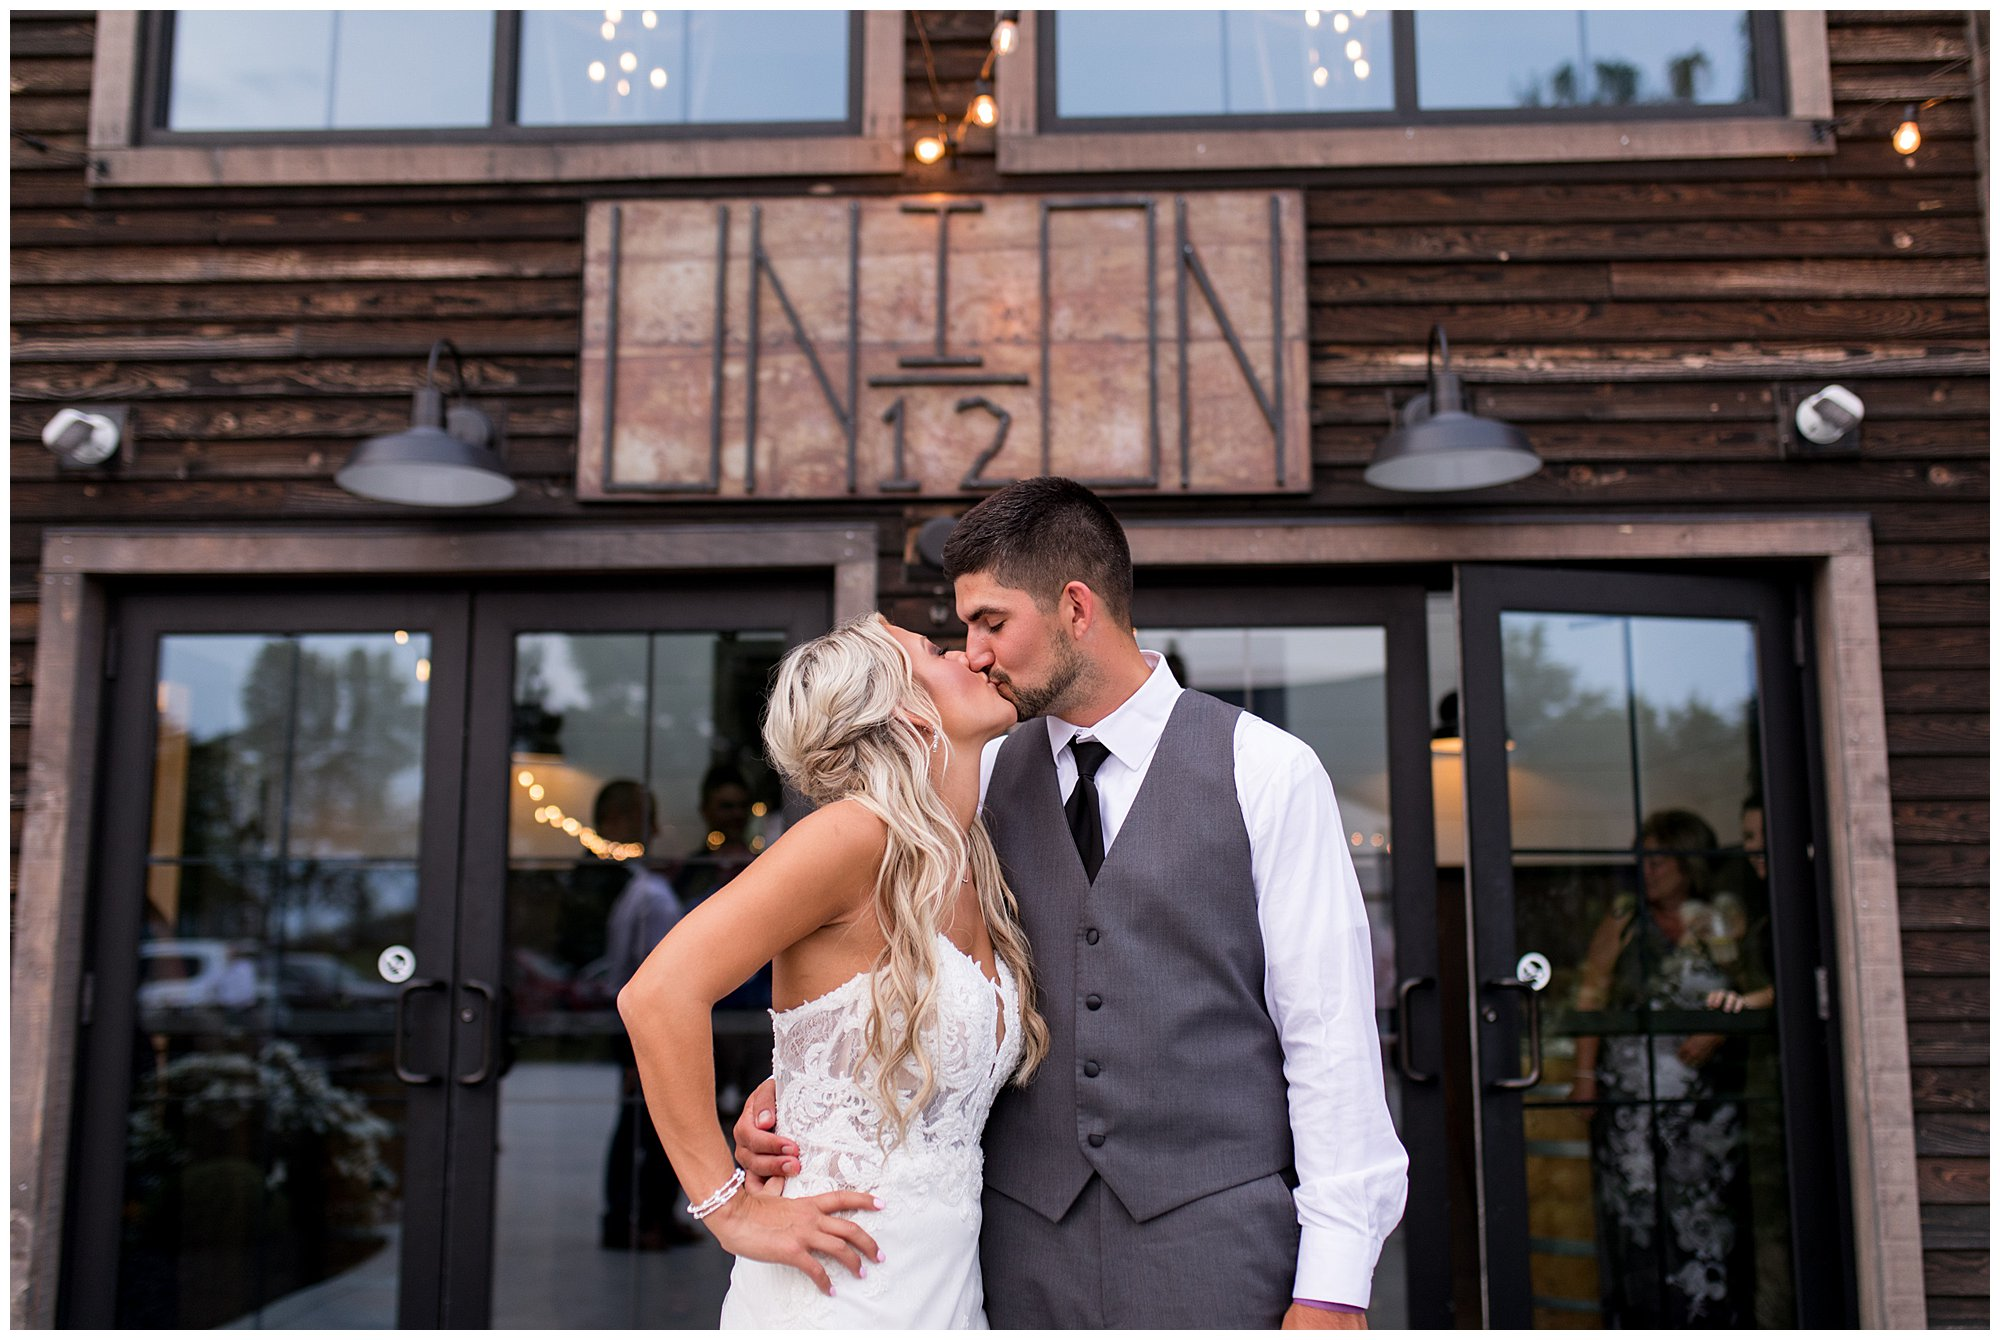 bride and groom kiss in front of Union 12 wedding venue sign in Fort Wayne